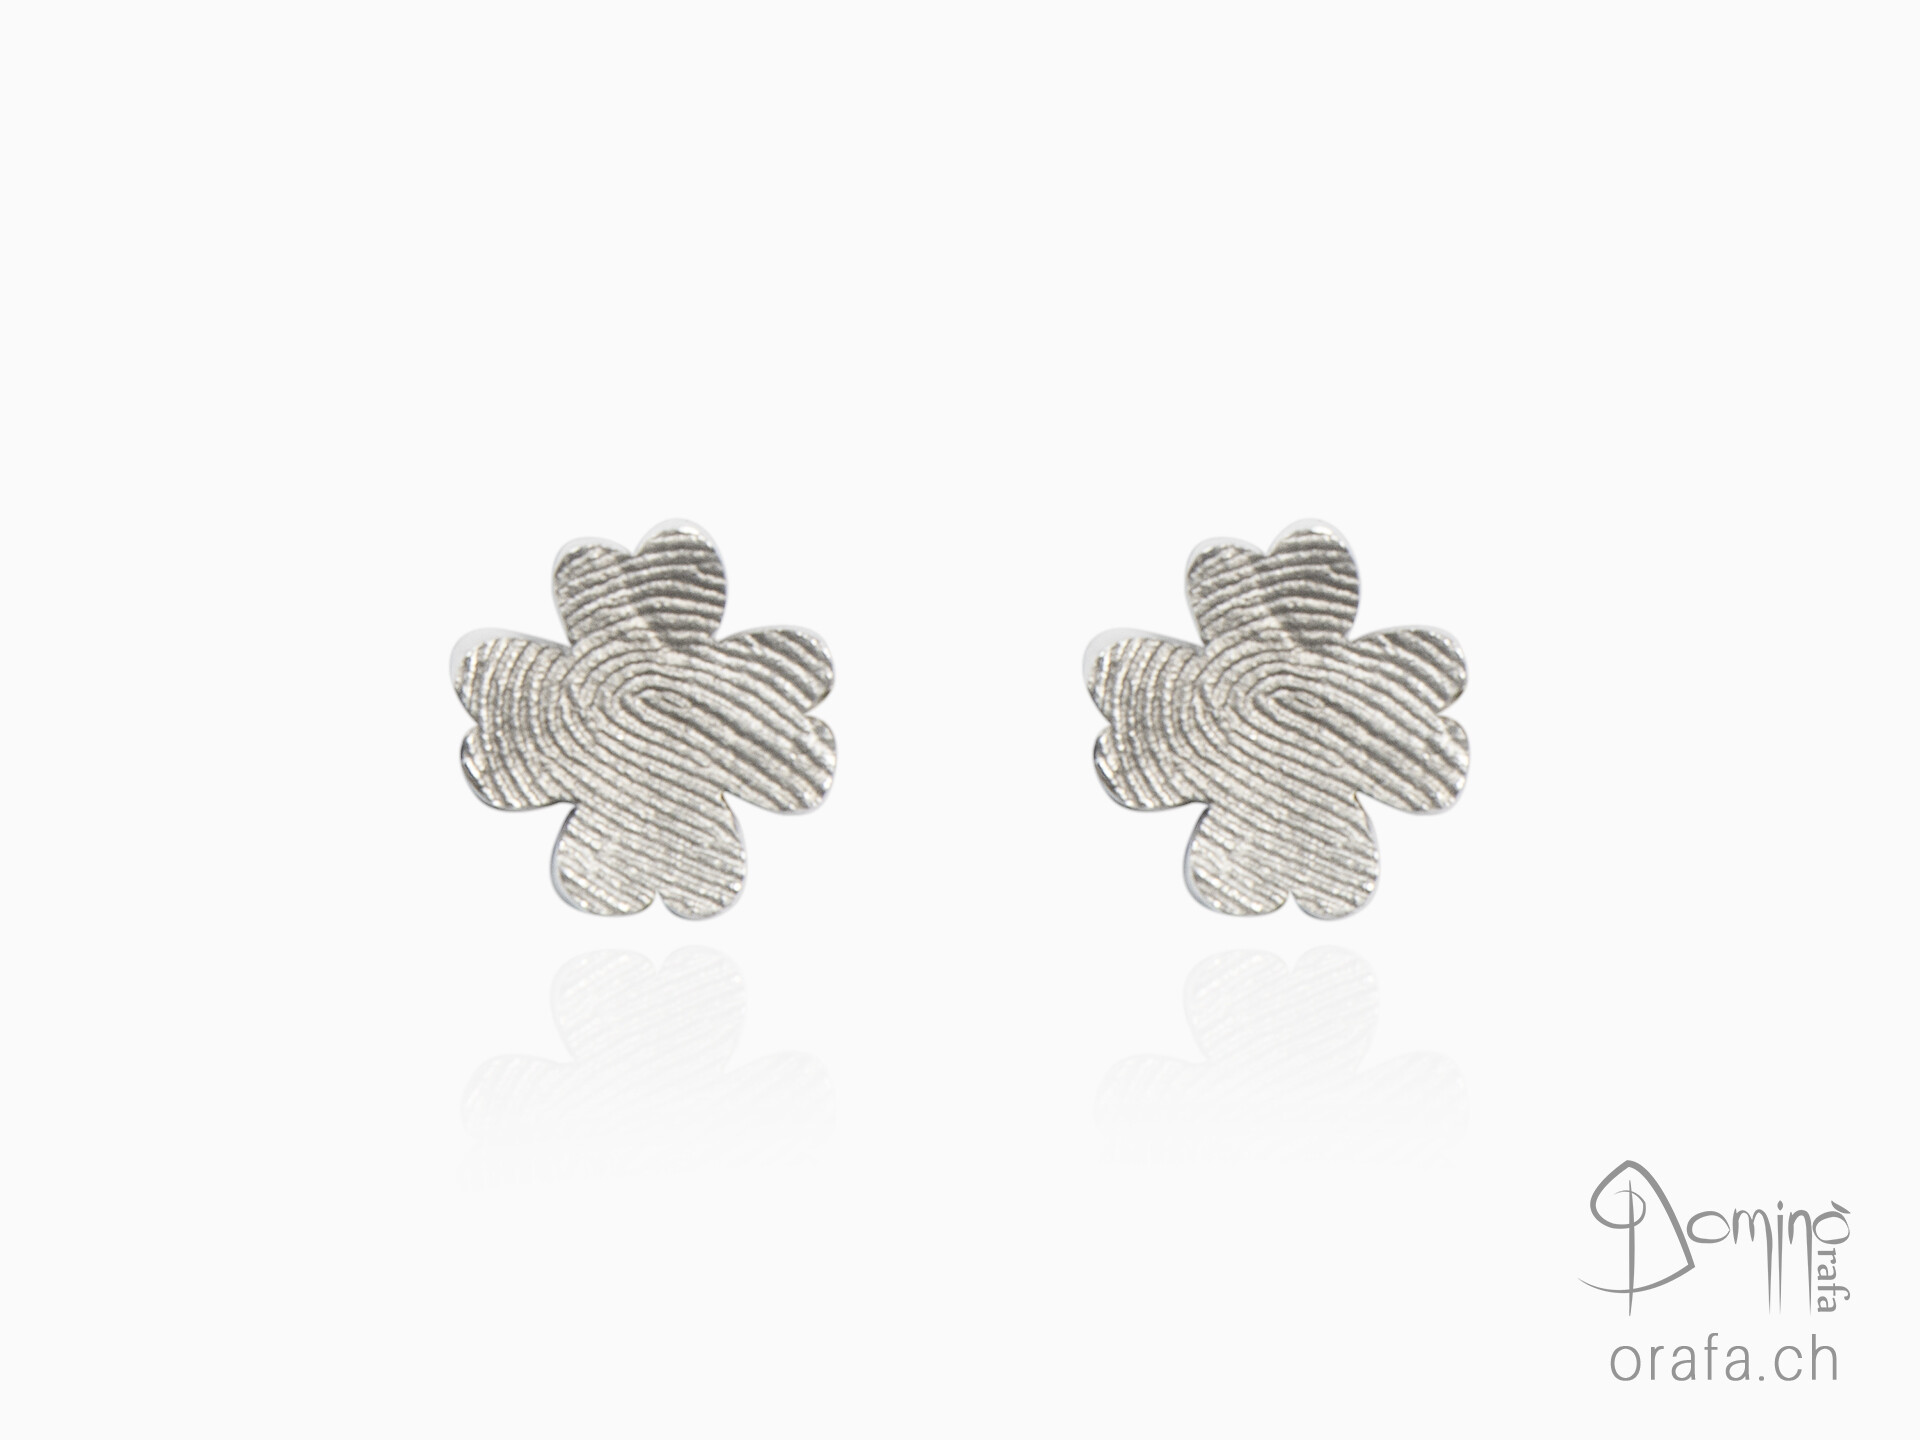 Four leaf clover earrings with fingerprints